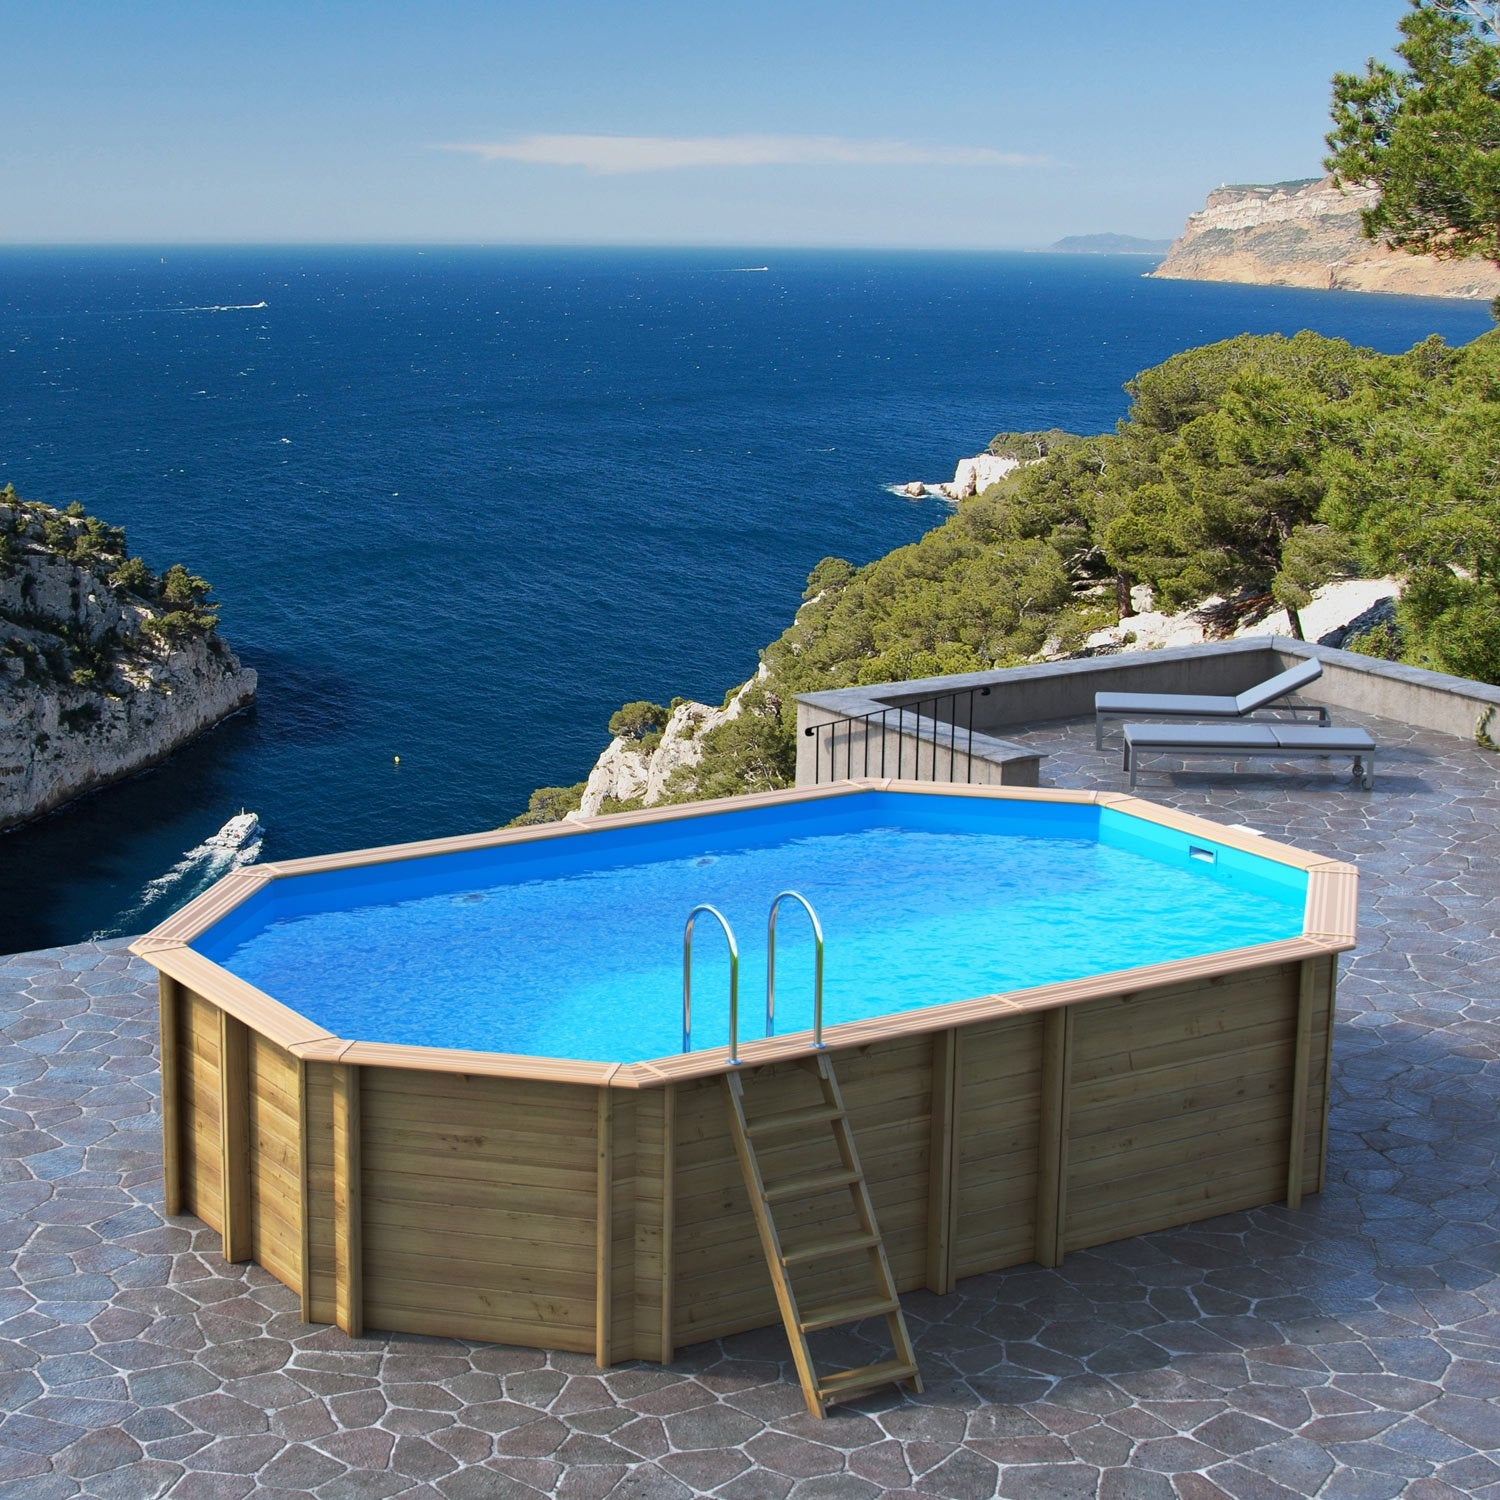 Piscine hors sol bois odyssea proswell by procopi l 6 4 x for Piscine demontable bois